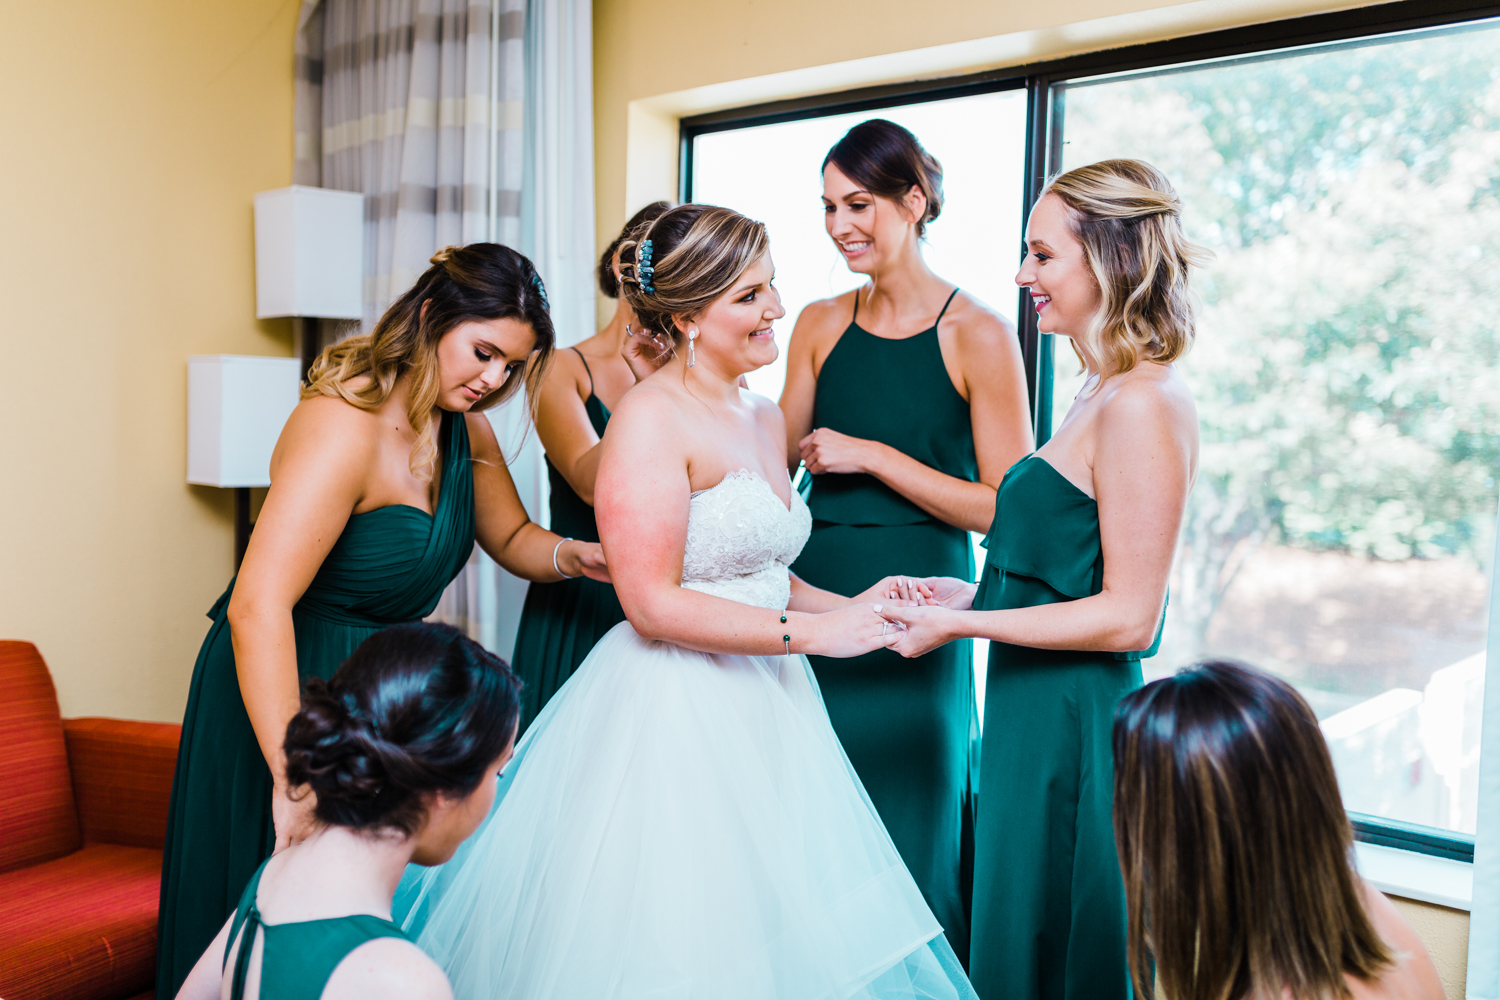 bride getting ready with her bridesmaids - emerald wedding inspiration - green bridesmaids dresses